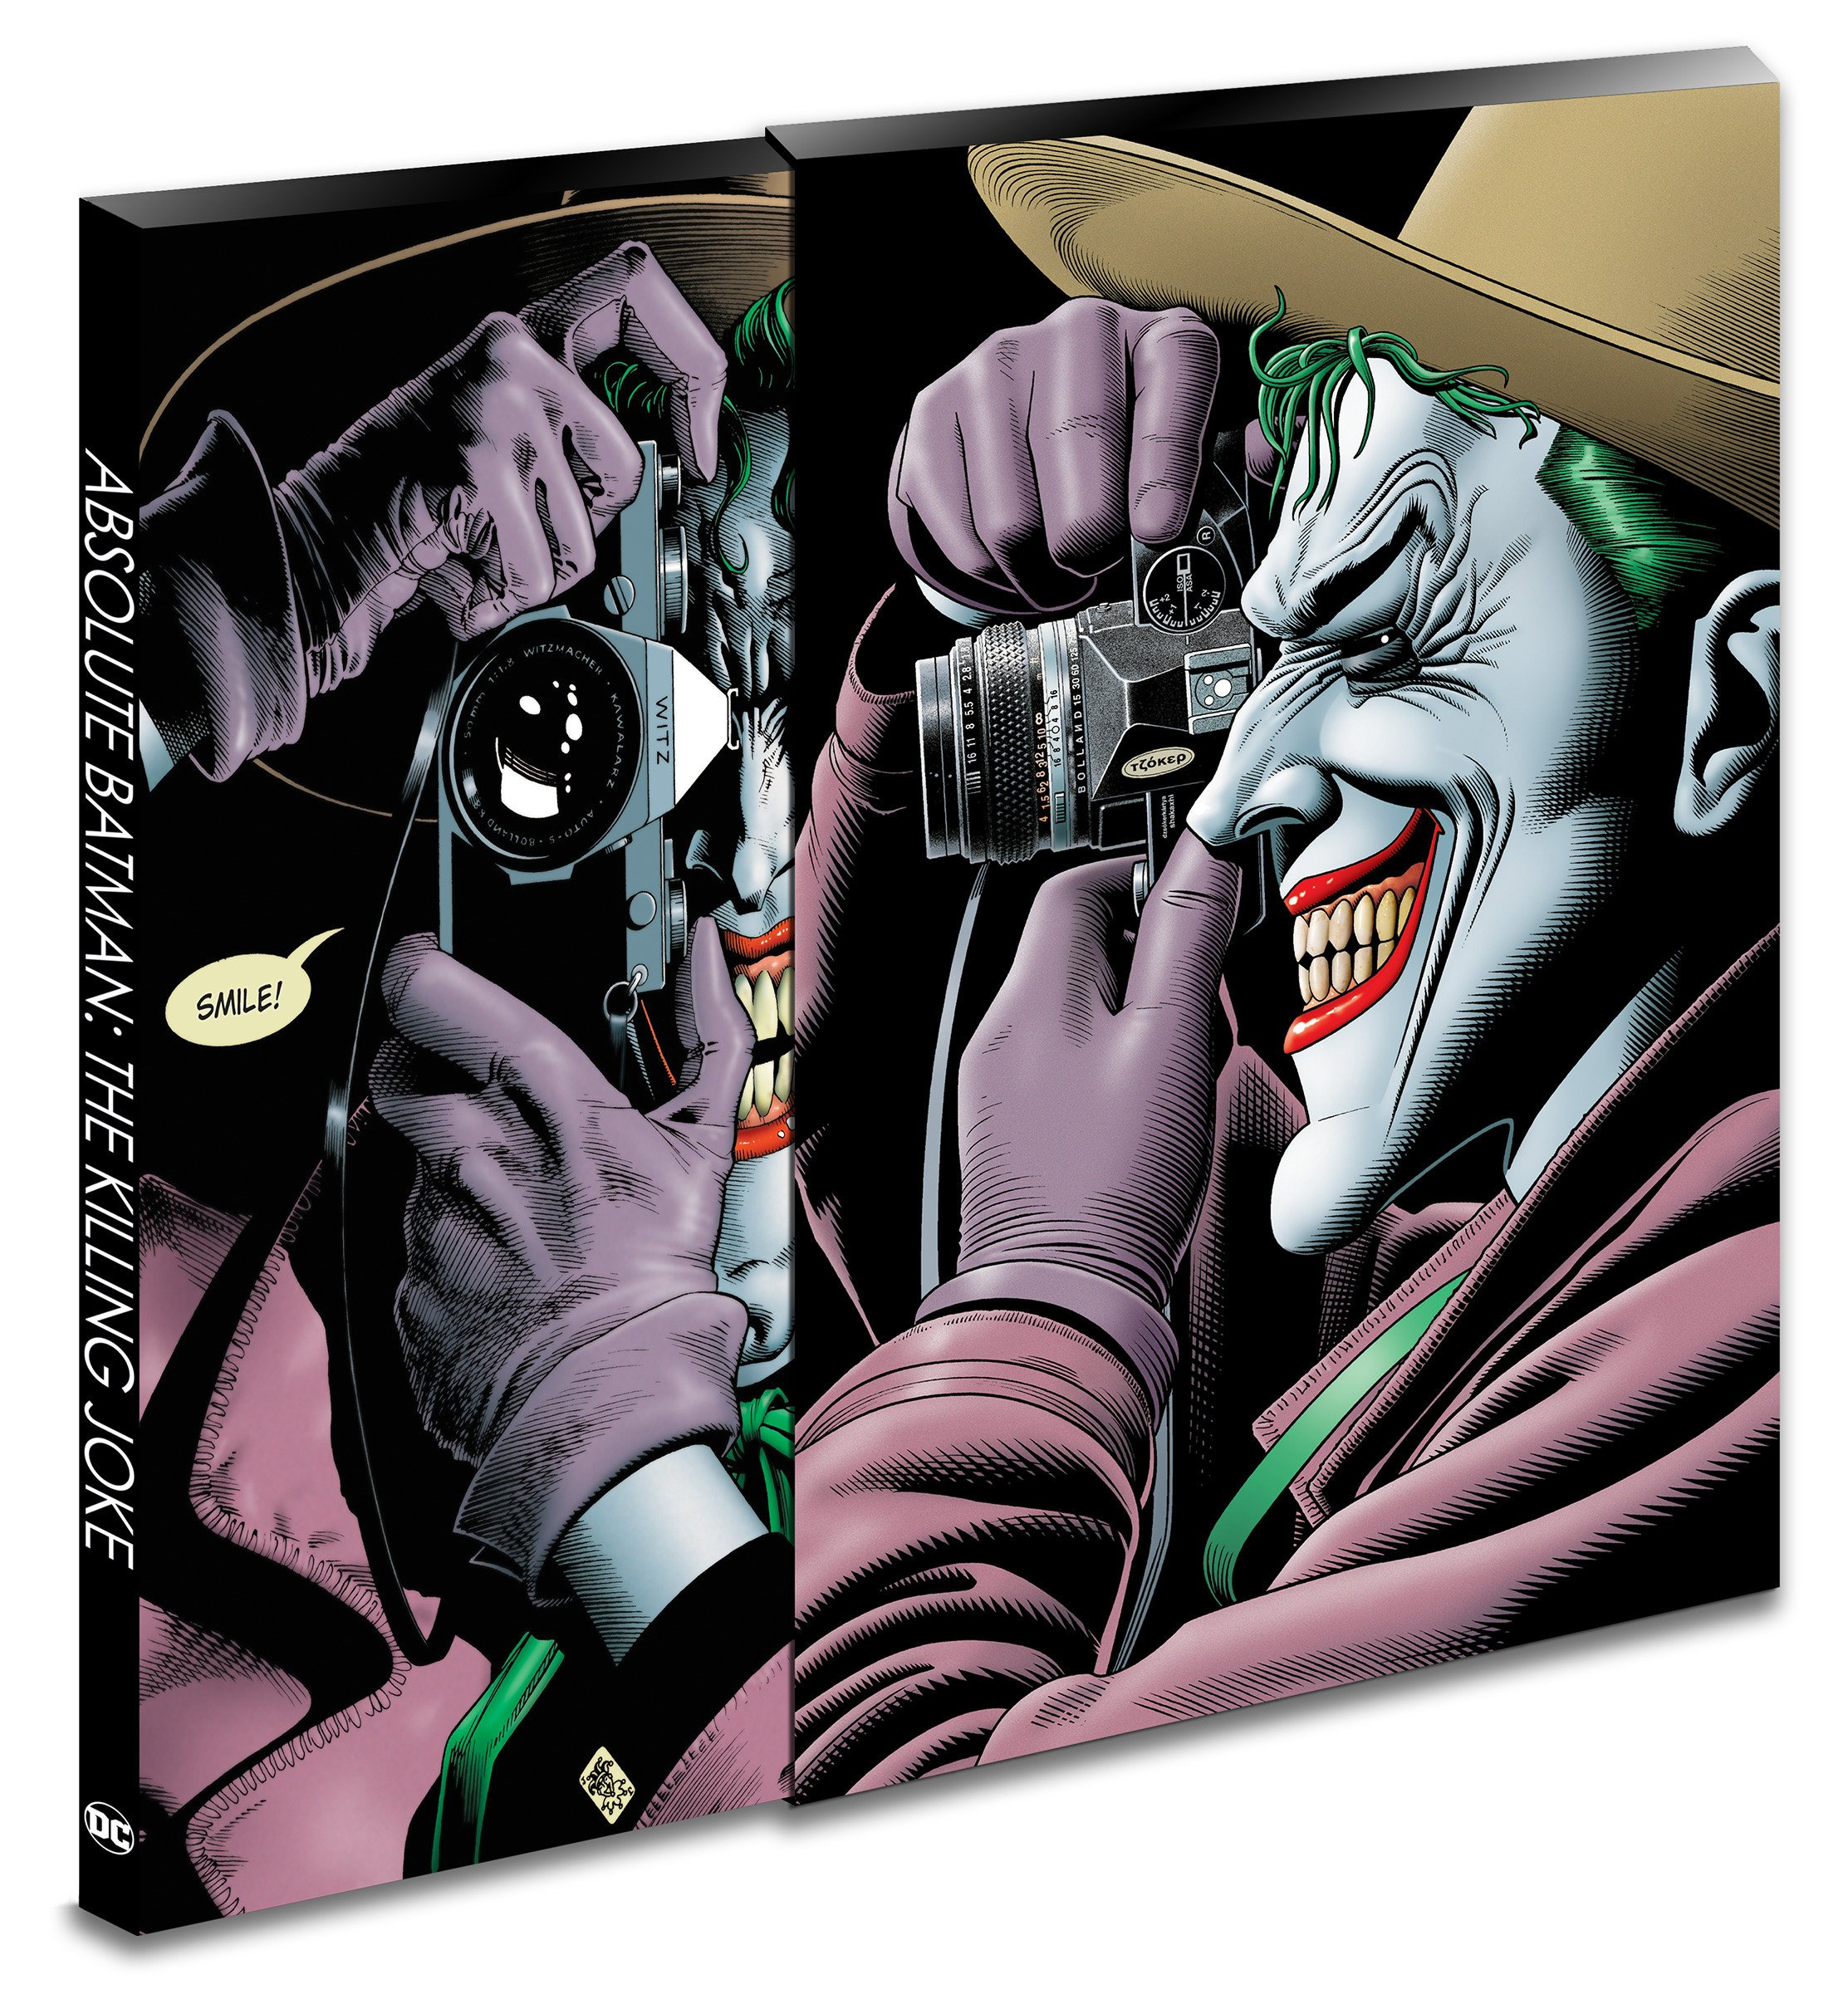 Absolute Batman: The Killing Joke (30th Anniversary Edition) by DC Comics